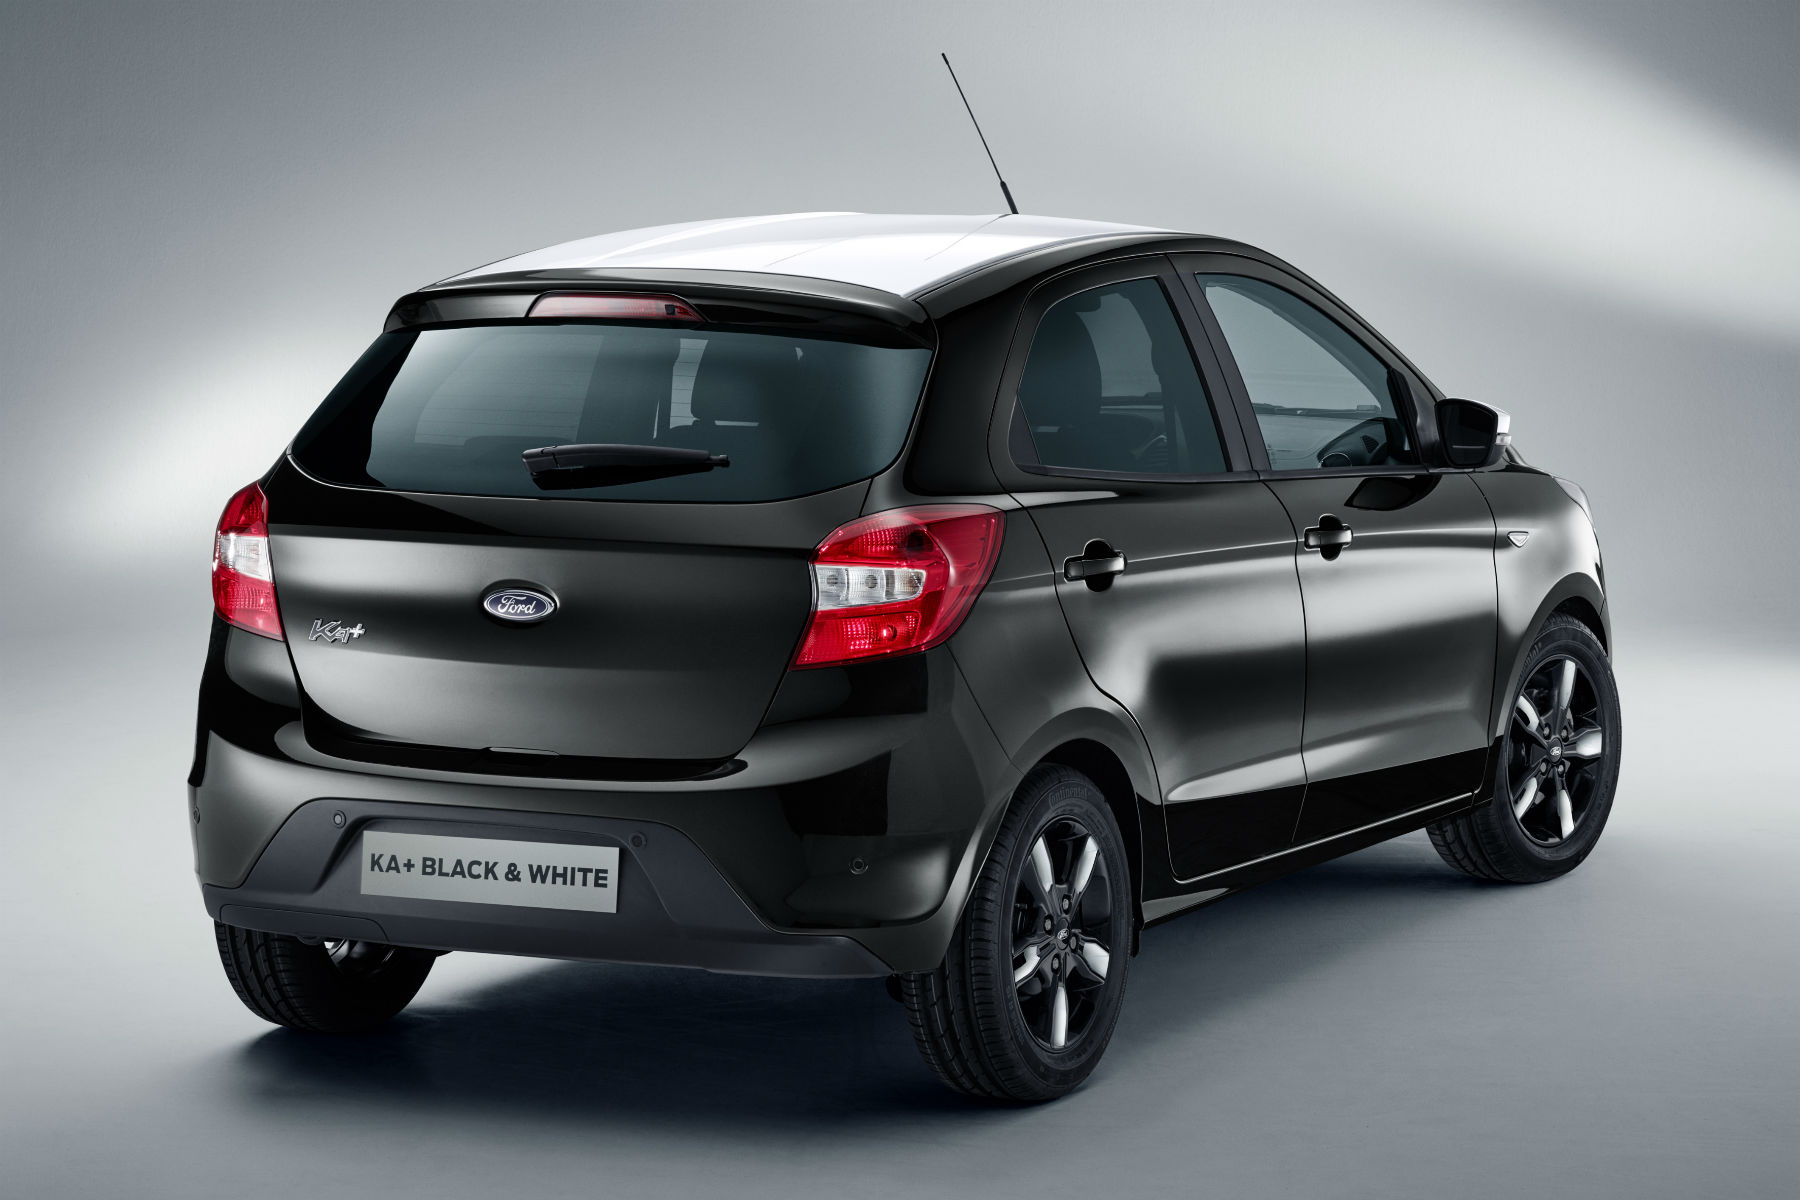 Ford Ka+: everything you need to know